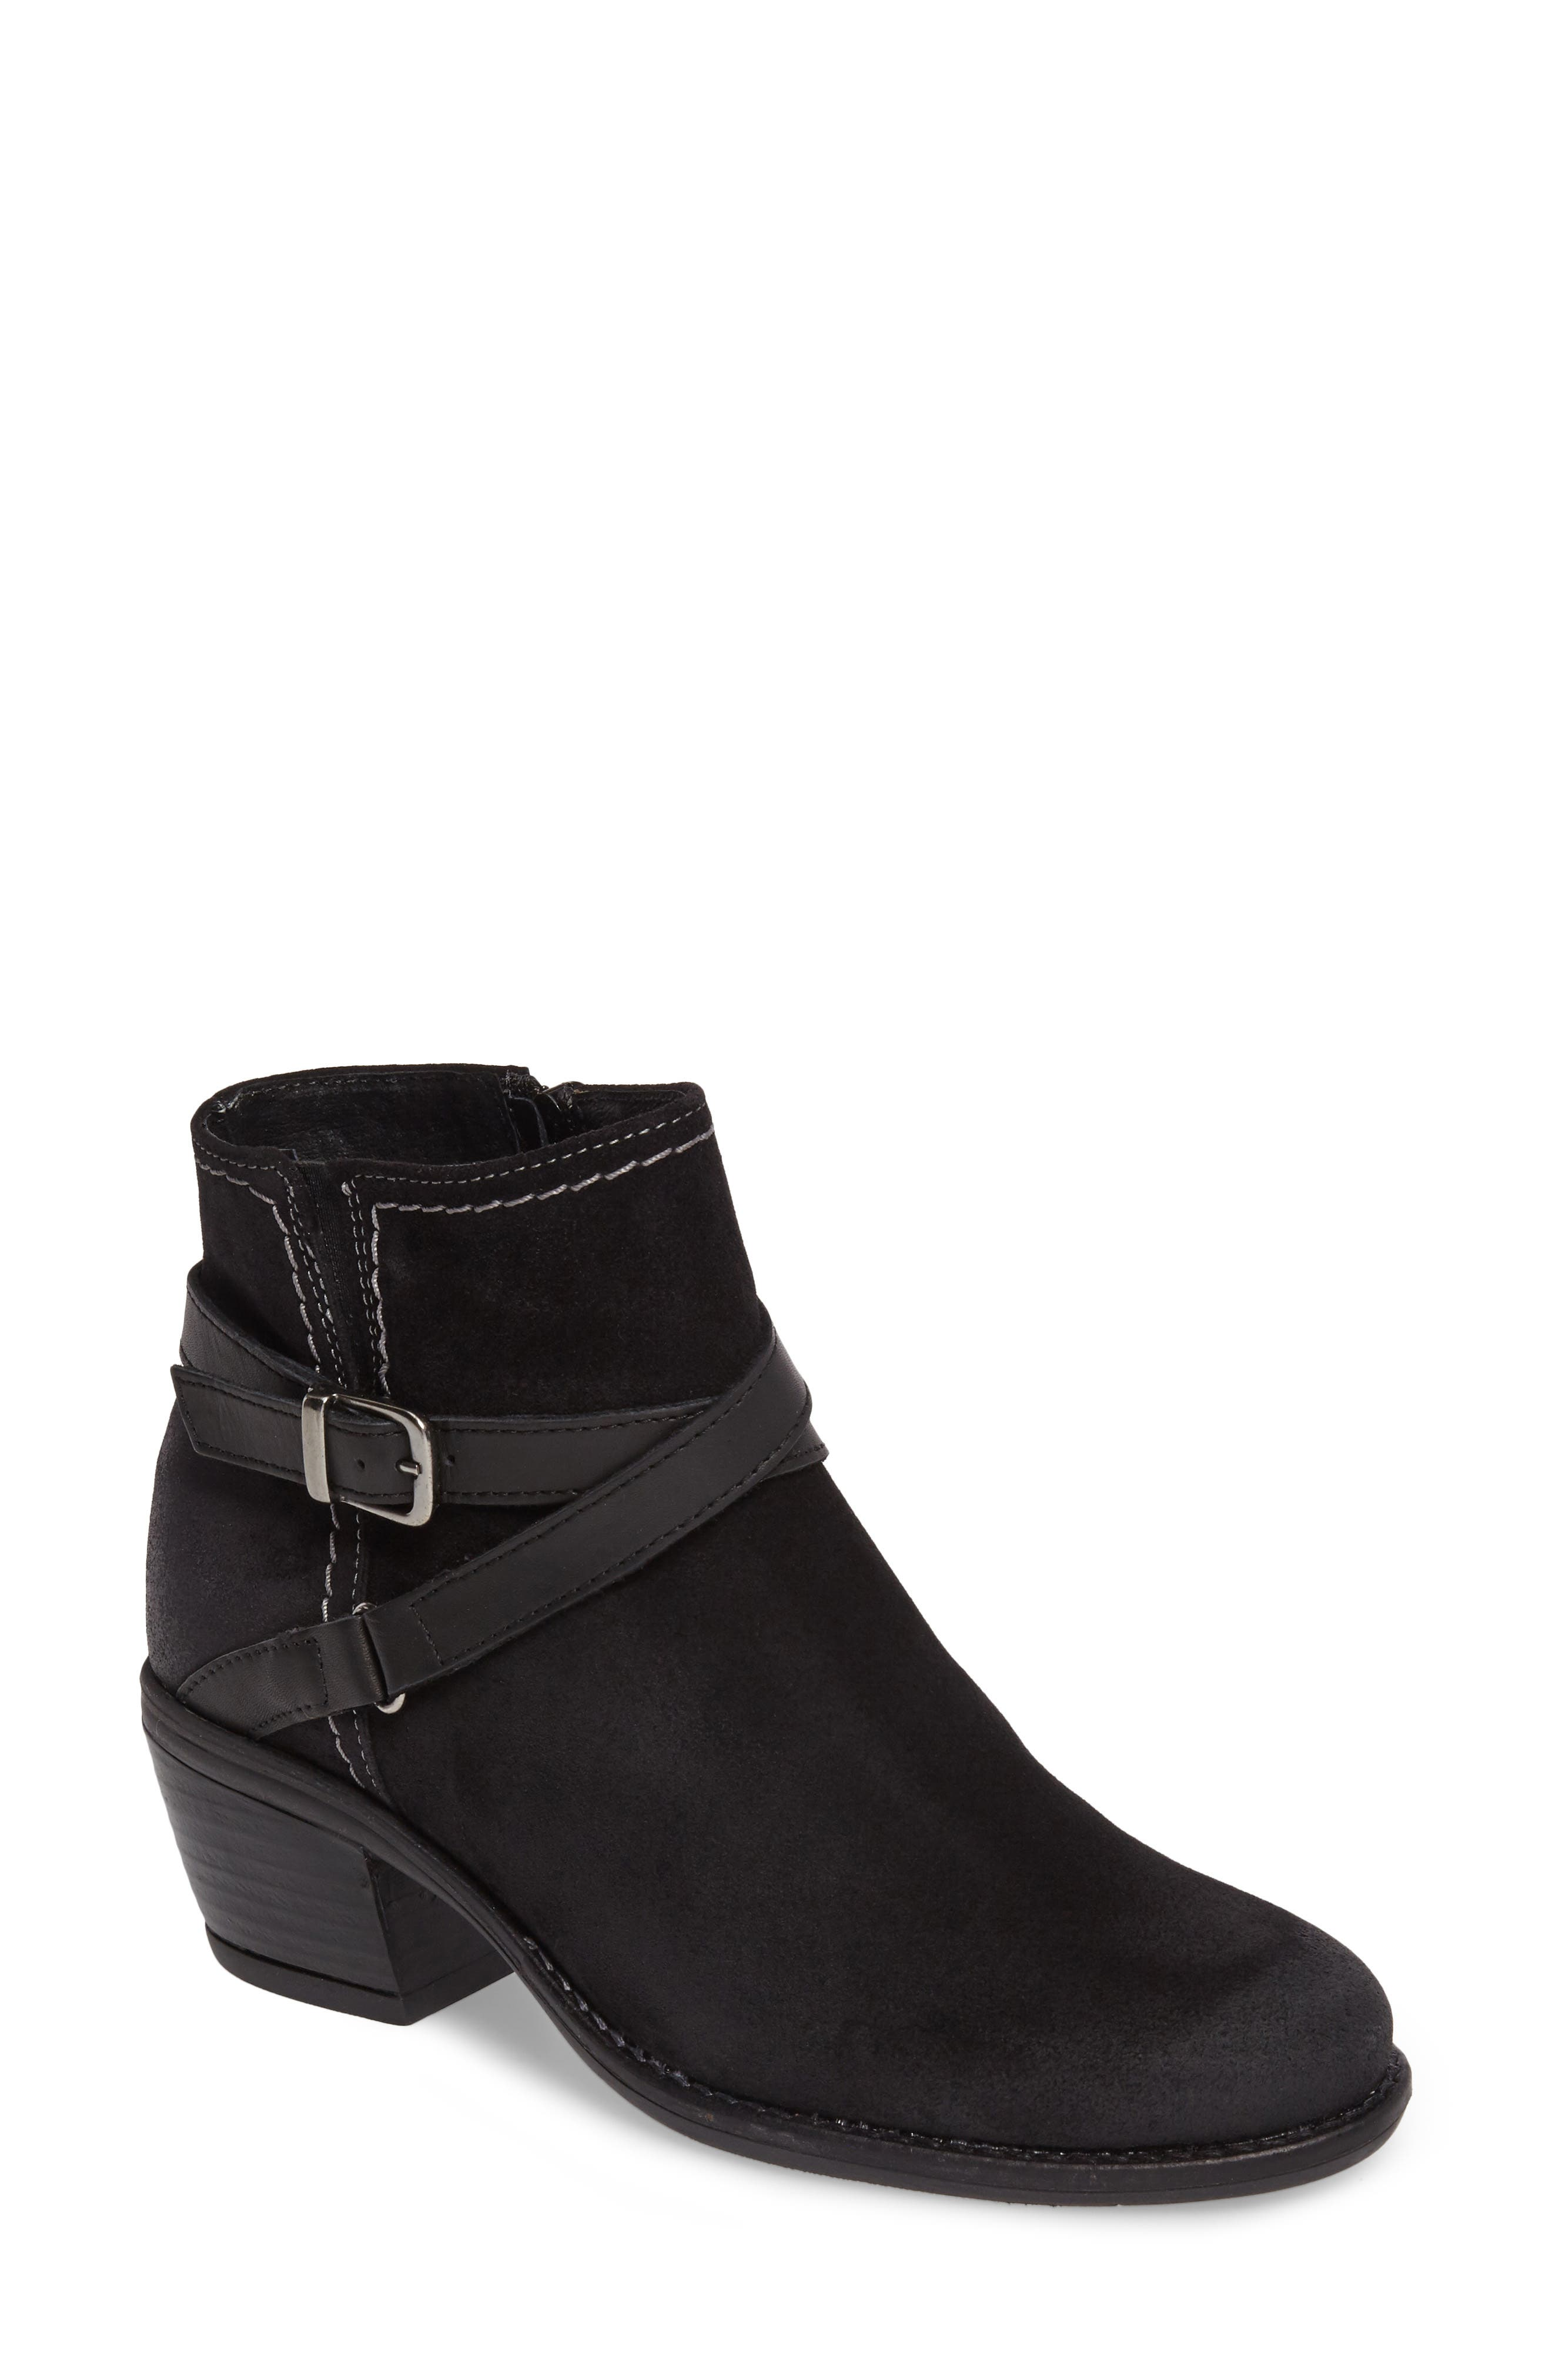 BOS. & CO., Greenville Waterproof Bootie, Main thumbnail 1, color, BLACK